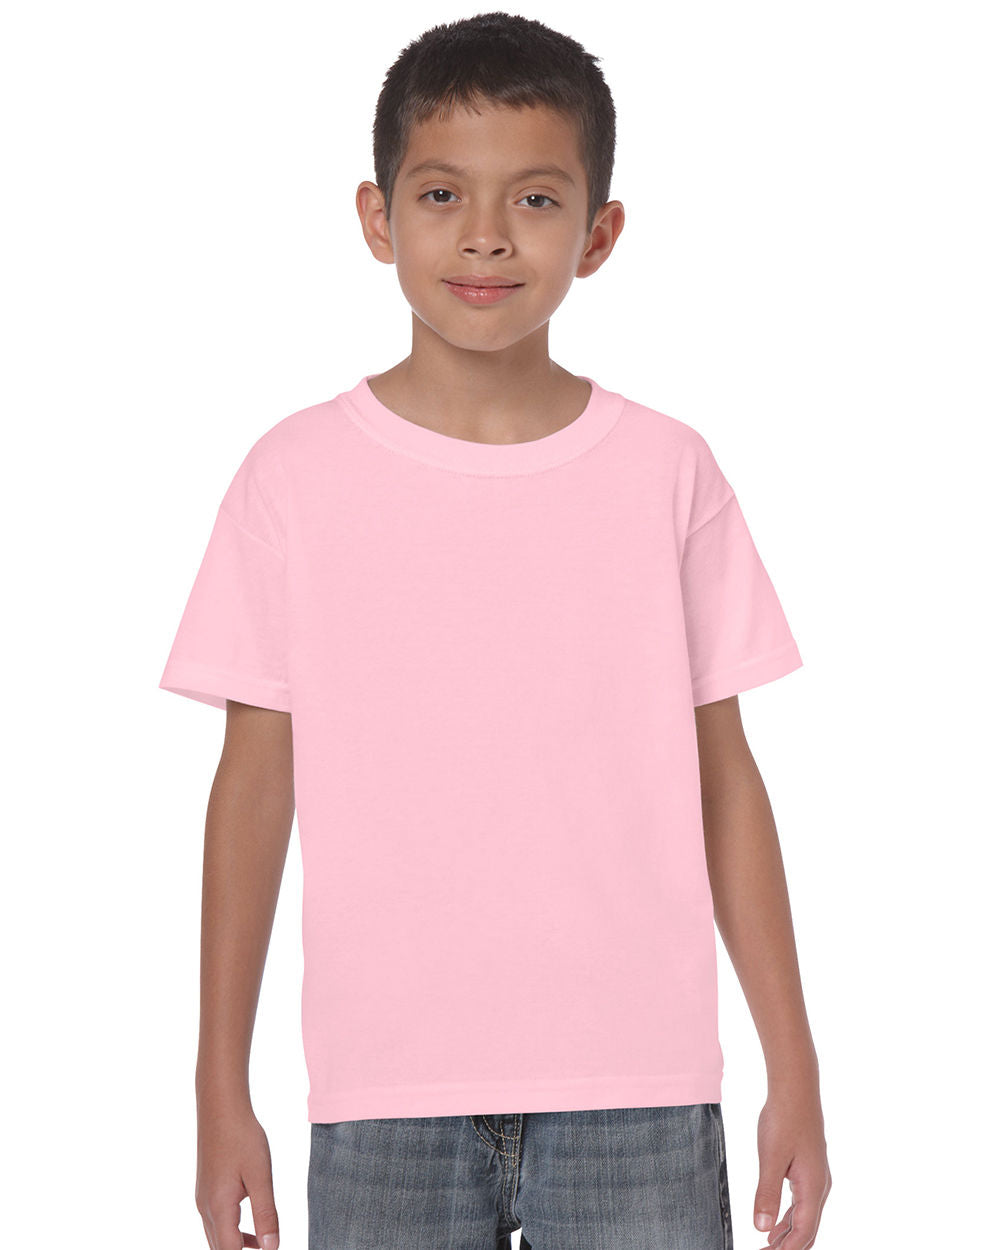 7d9e572931f2 Boys Girls Plain Unisex Tshirt School Uniform Top T Shirt All Sizes Colours  NEW